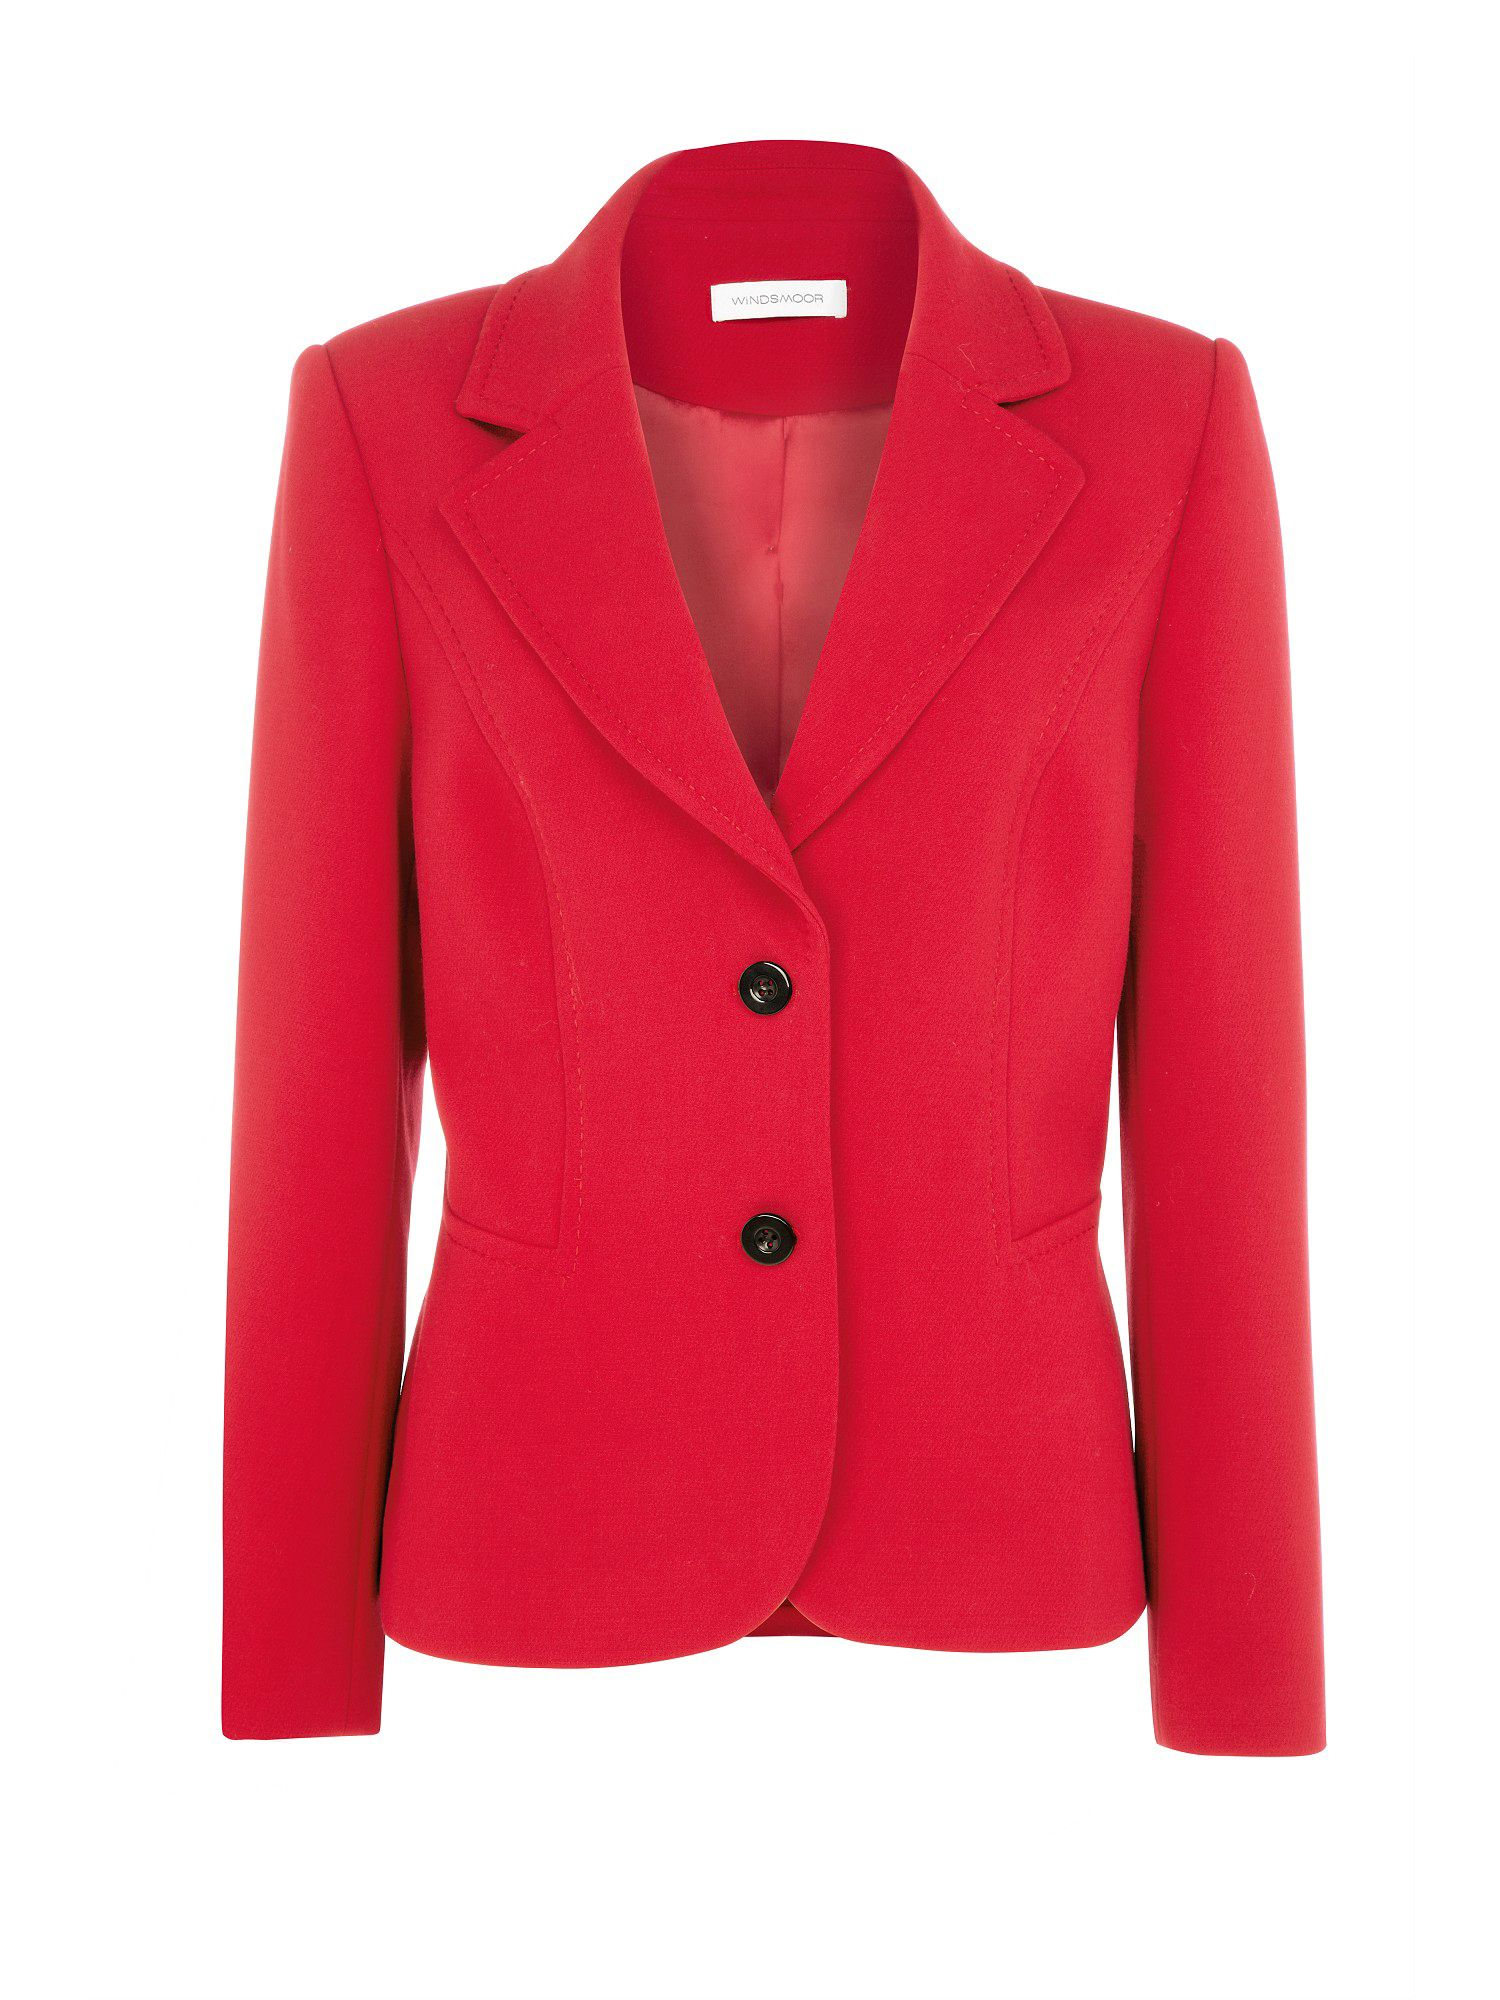 Red tailored jacket